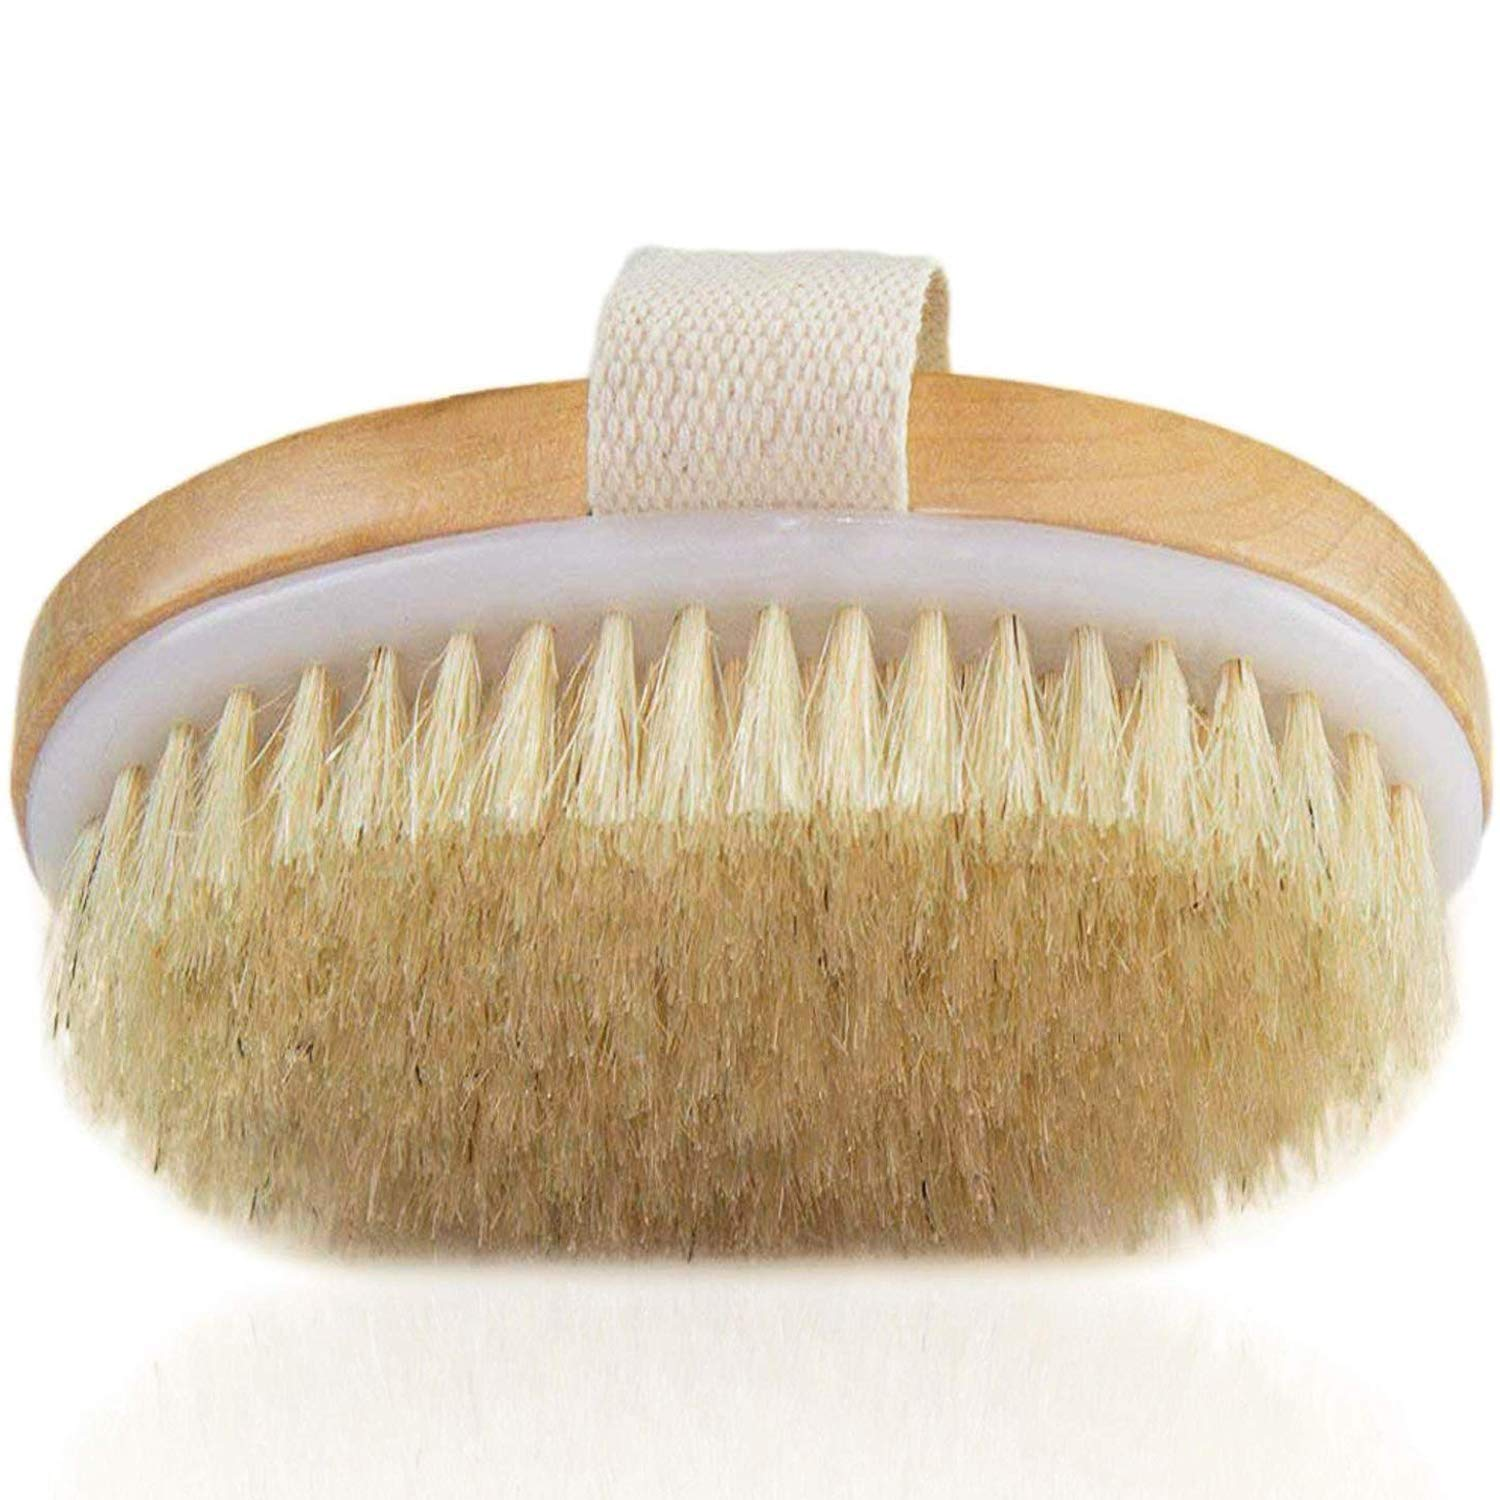 Amazon Com Dry Brush Body Brush For Cellulite And Lymphatic